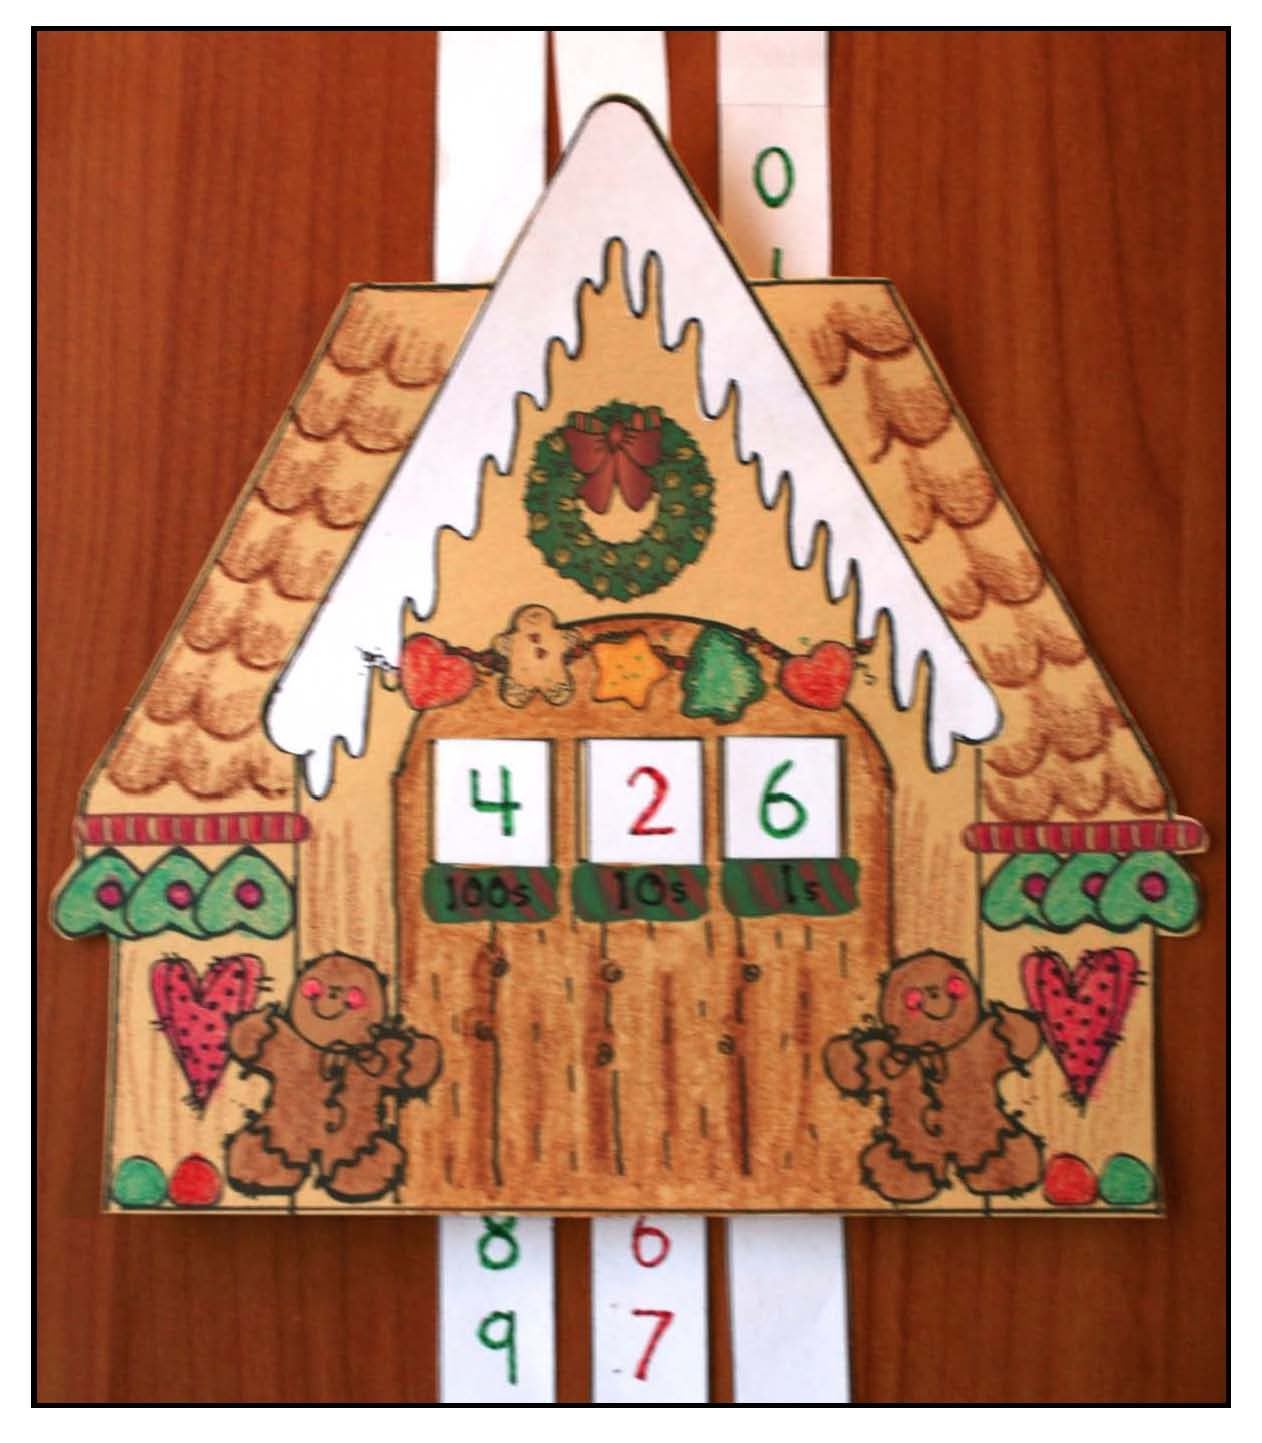 gingerbread activities, gingerbread emergent reader, spatial directions activities, common core gingerbread, gingerbread crafts, gingerbread games, december writing prompts, gingerbread bulletin boards, bulletin board ideas for december